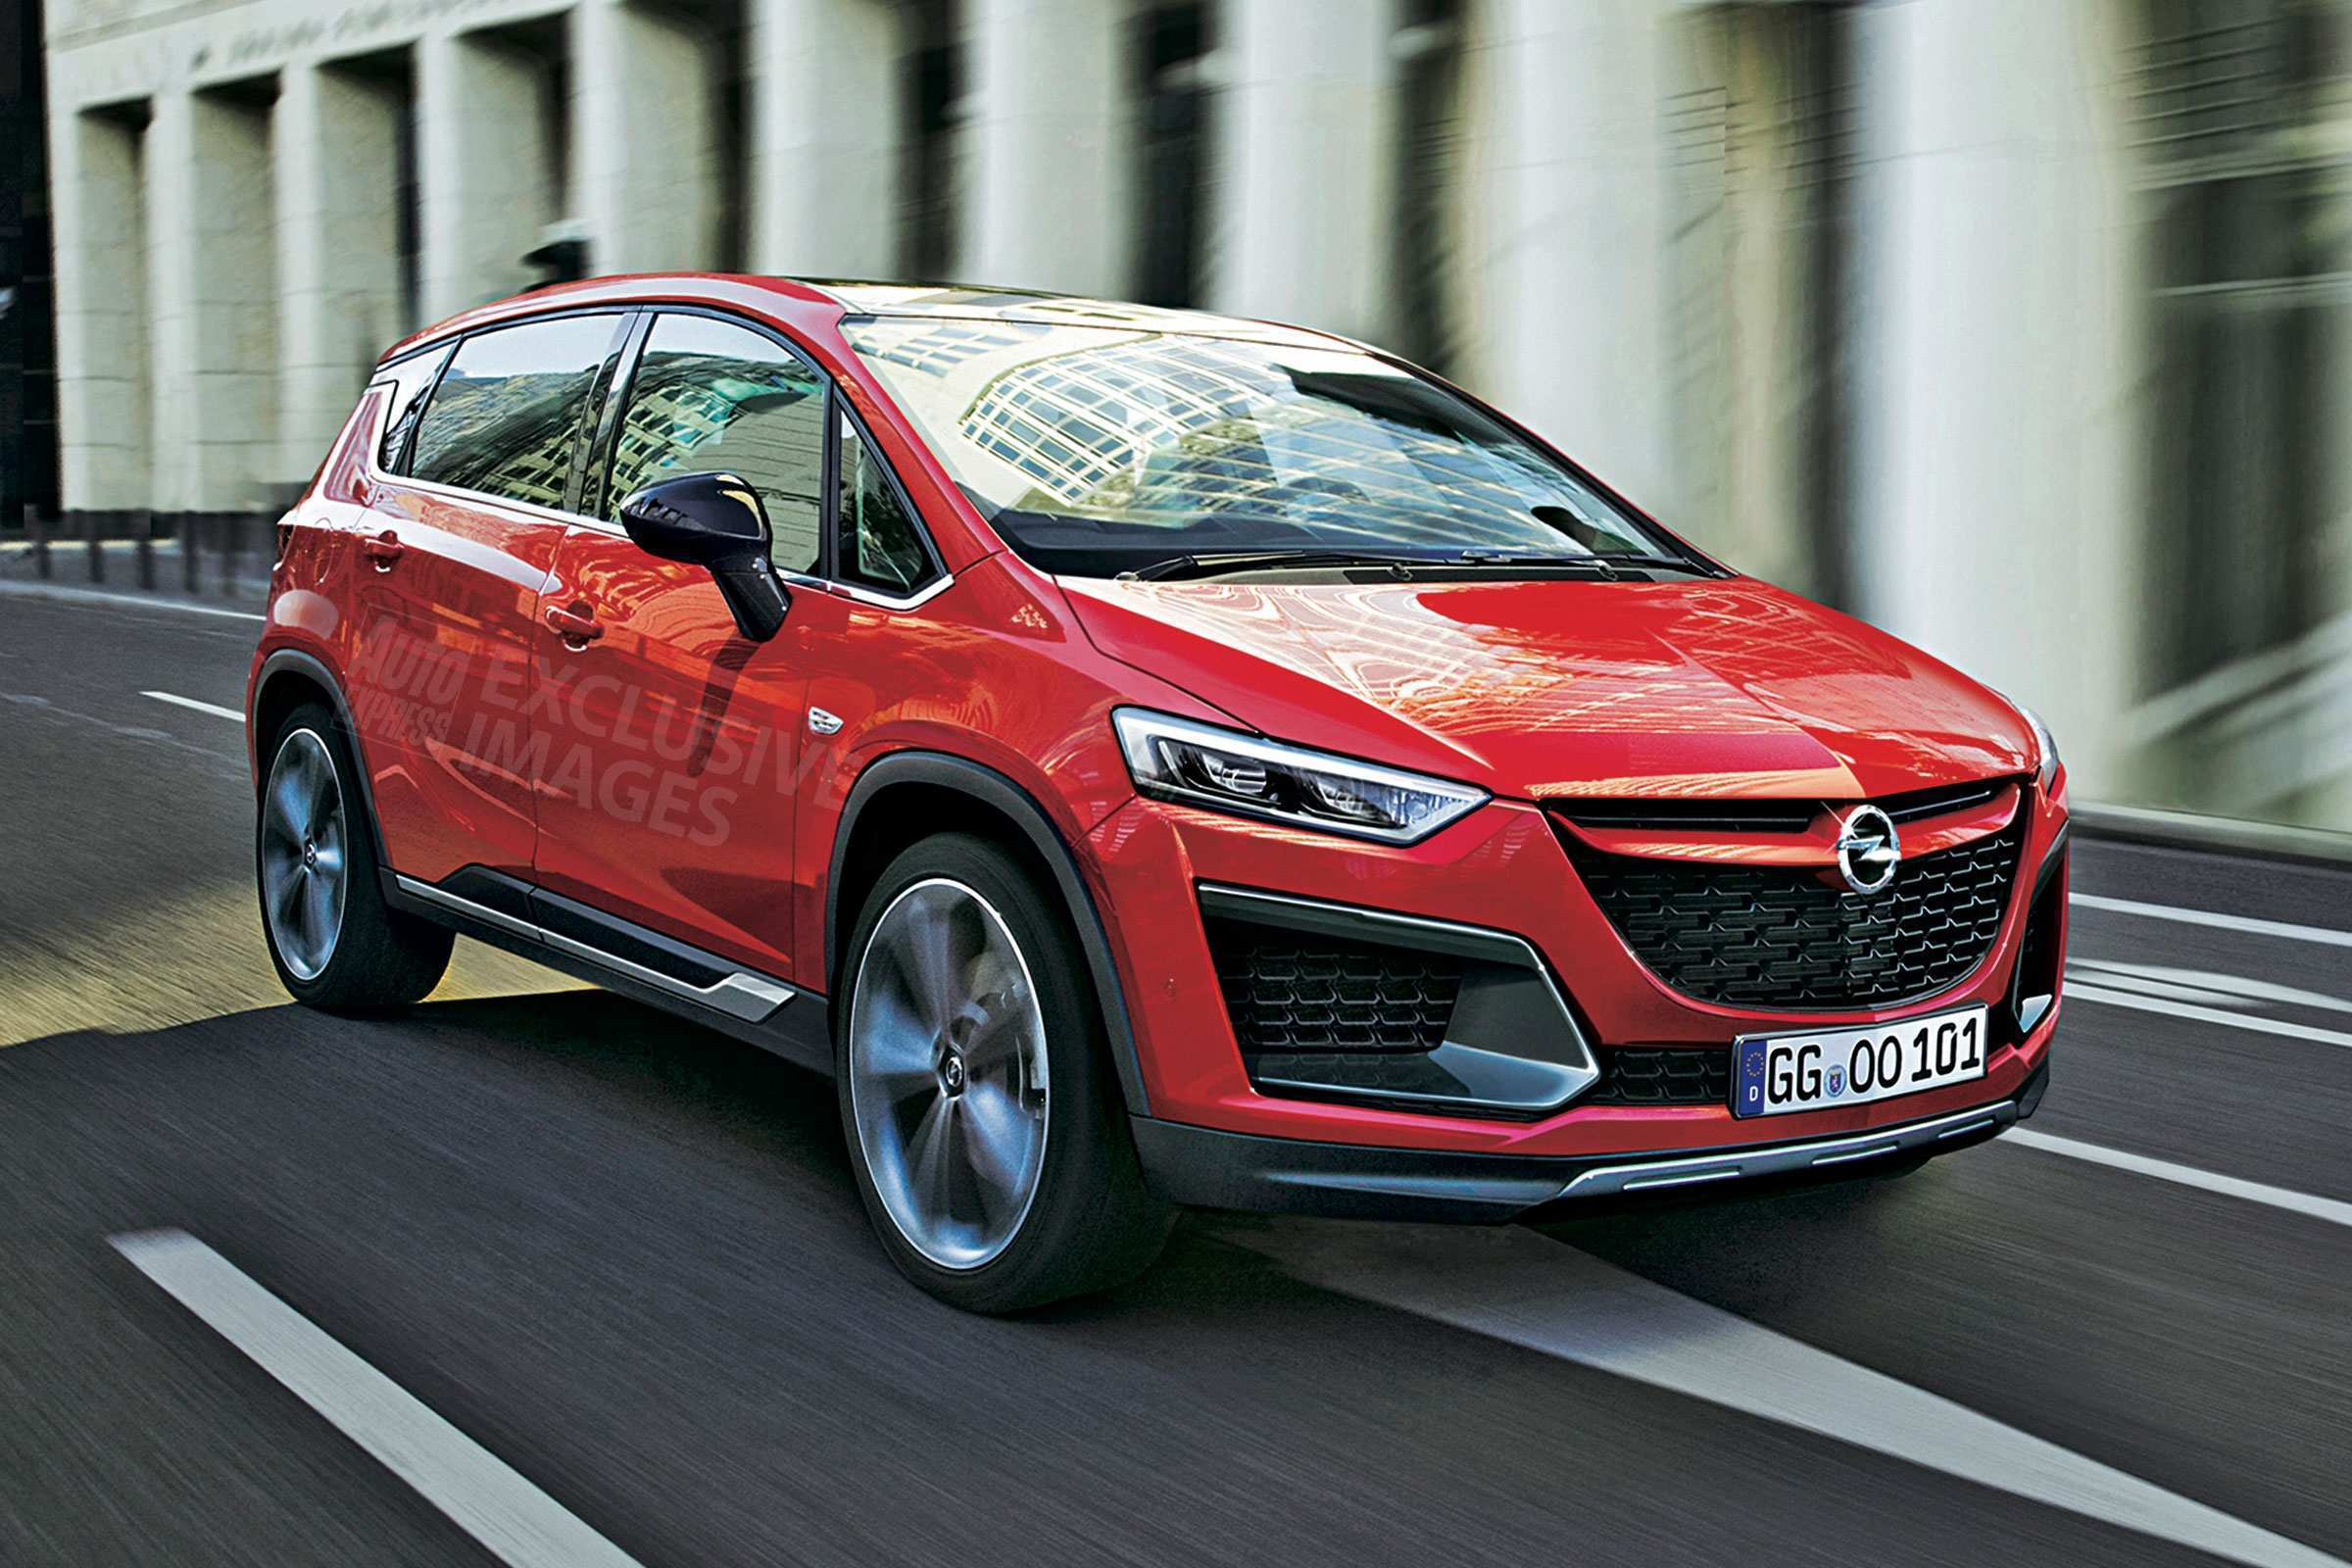 80 Concept of New Opel Zafira 2020 Redesign and Concept with New Opel Zafira 2020